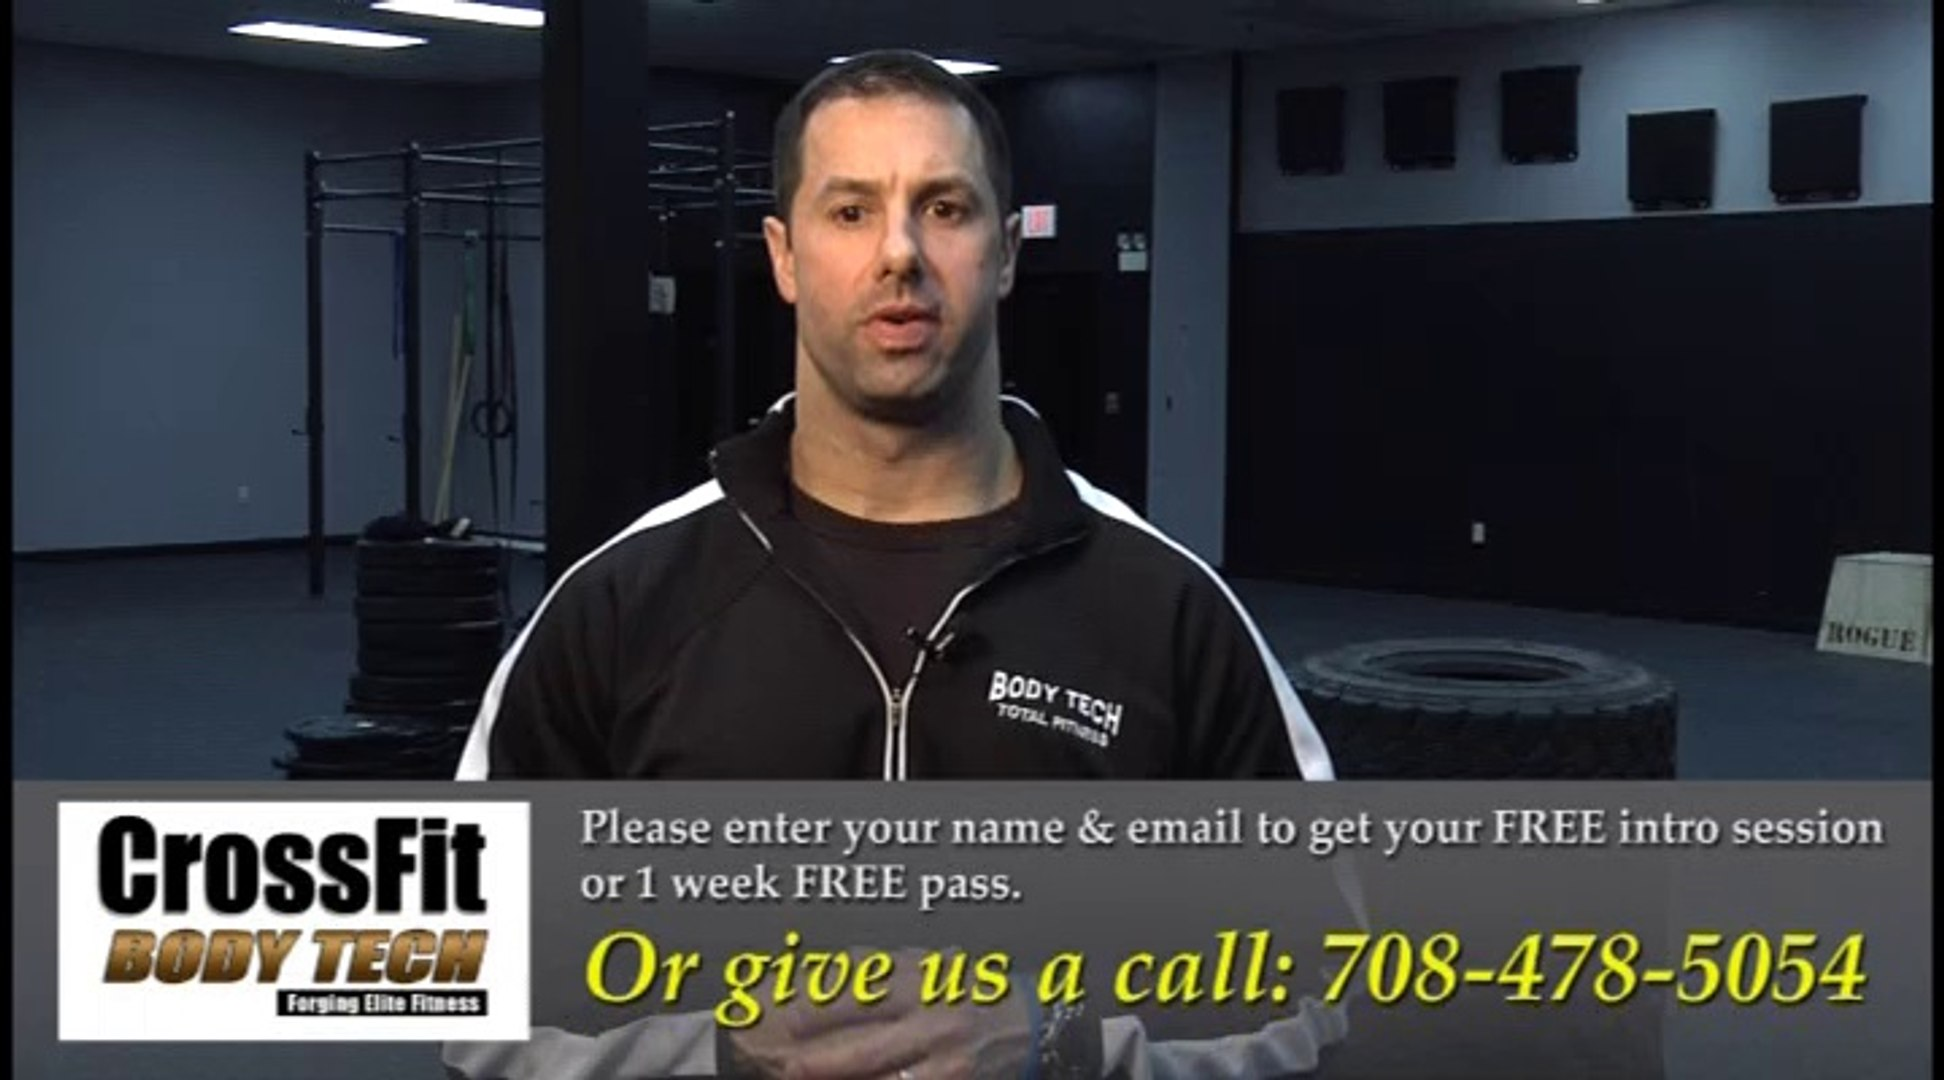 Cross Fit Body Tech around Mokena IL l CrossFit Body Tech Mokena IL (708) 478-5054